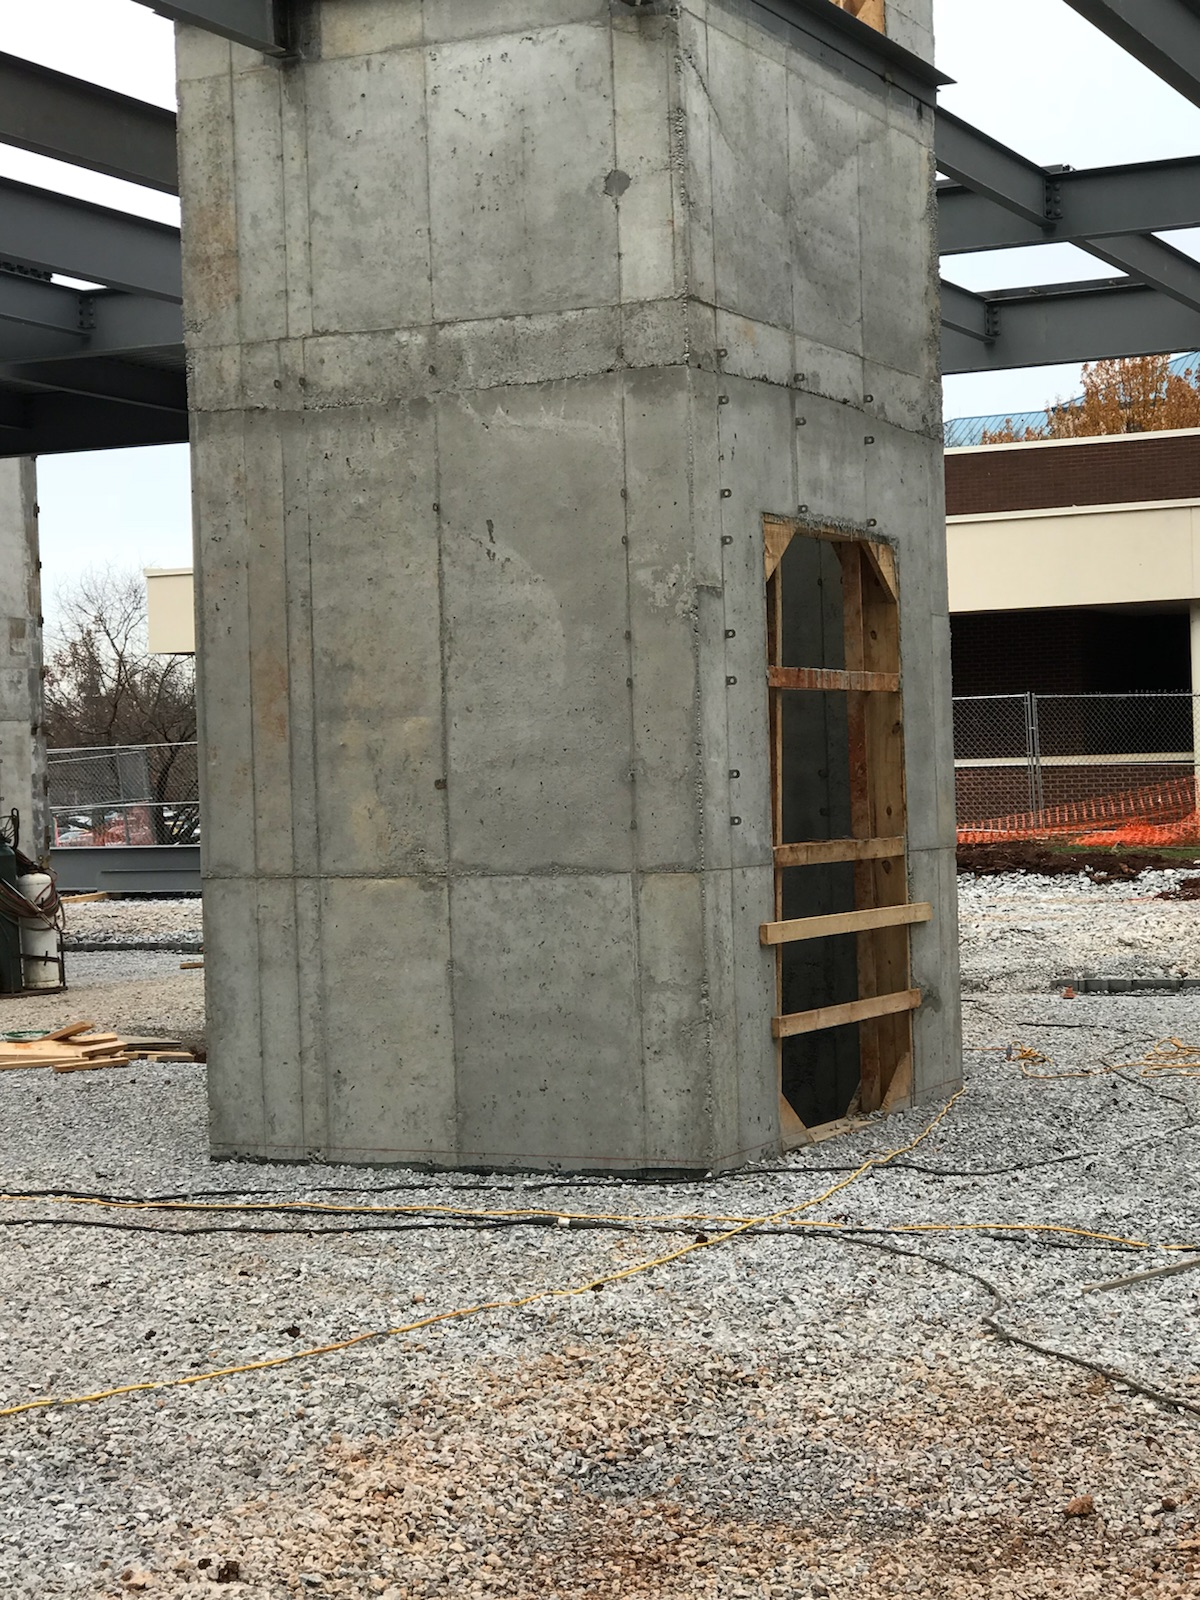 Construction of new elevator shaft 50 feet high at UAH in Huntsville, Alabama